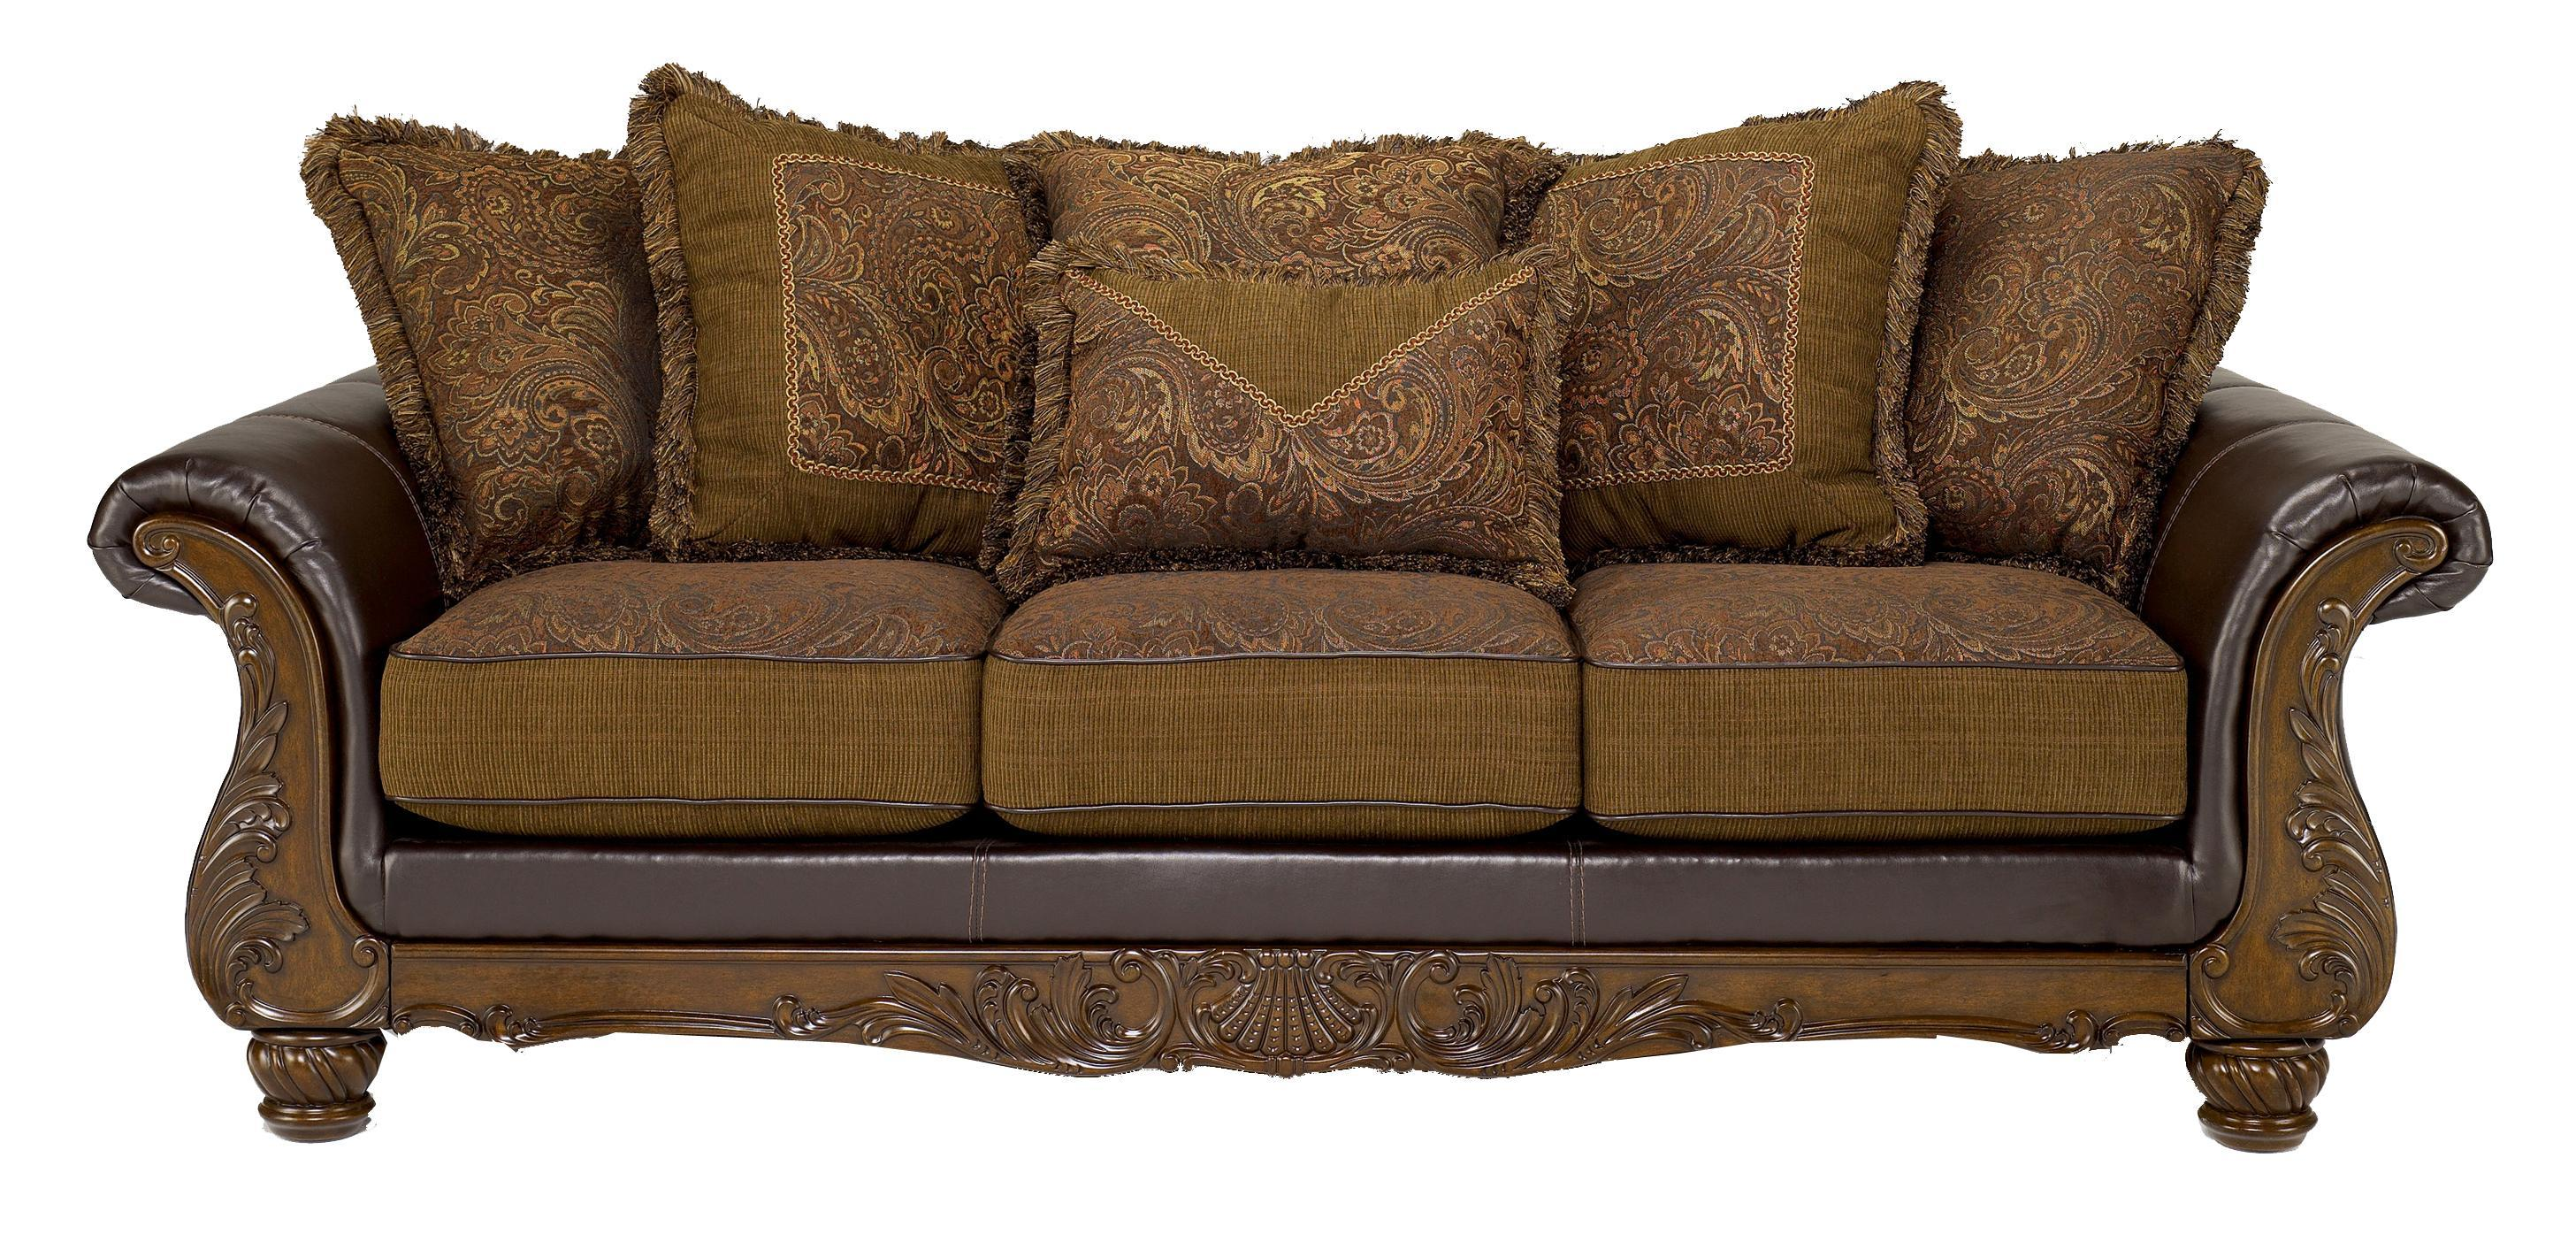 wilmington walnut traditional exposed wood sofa with loose pillow